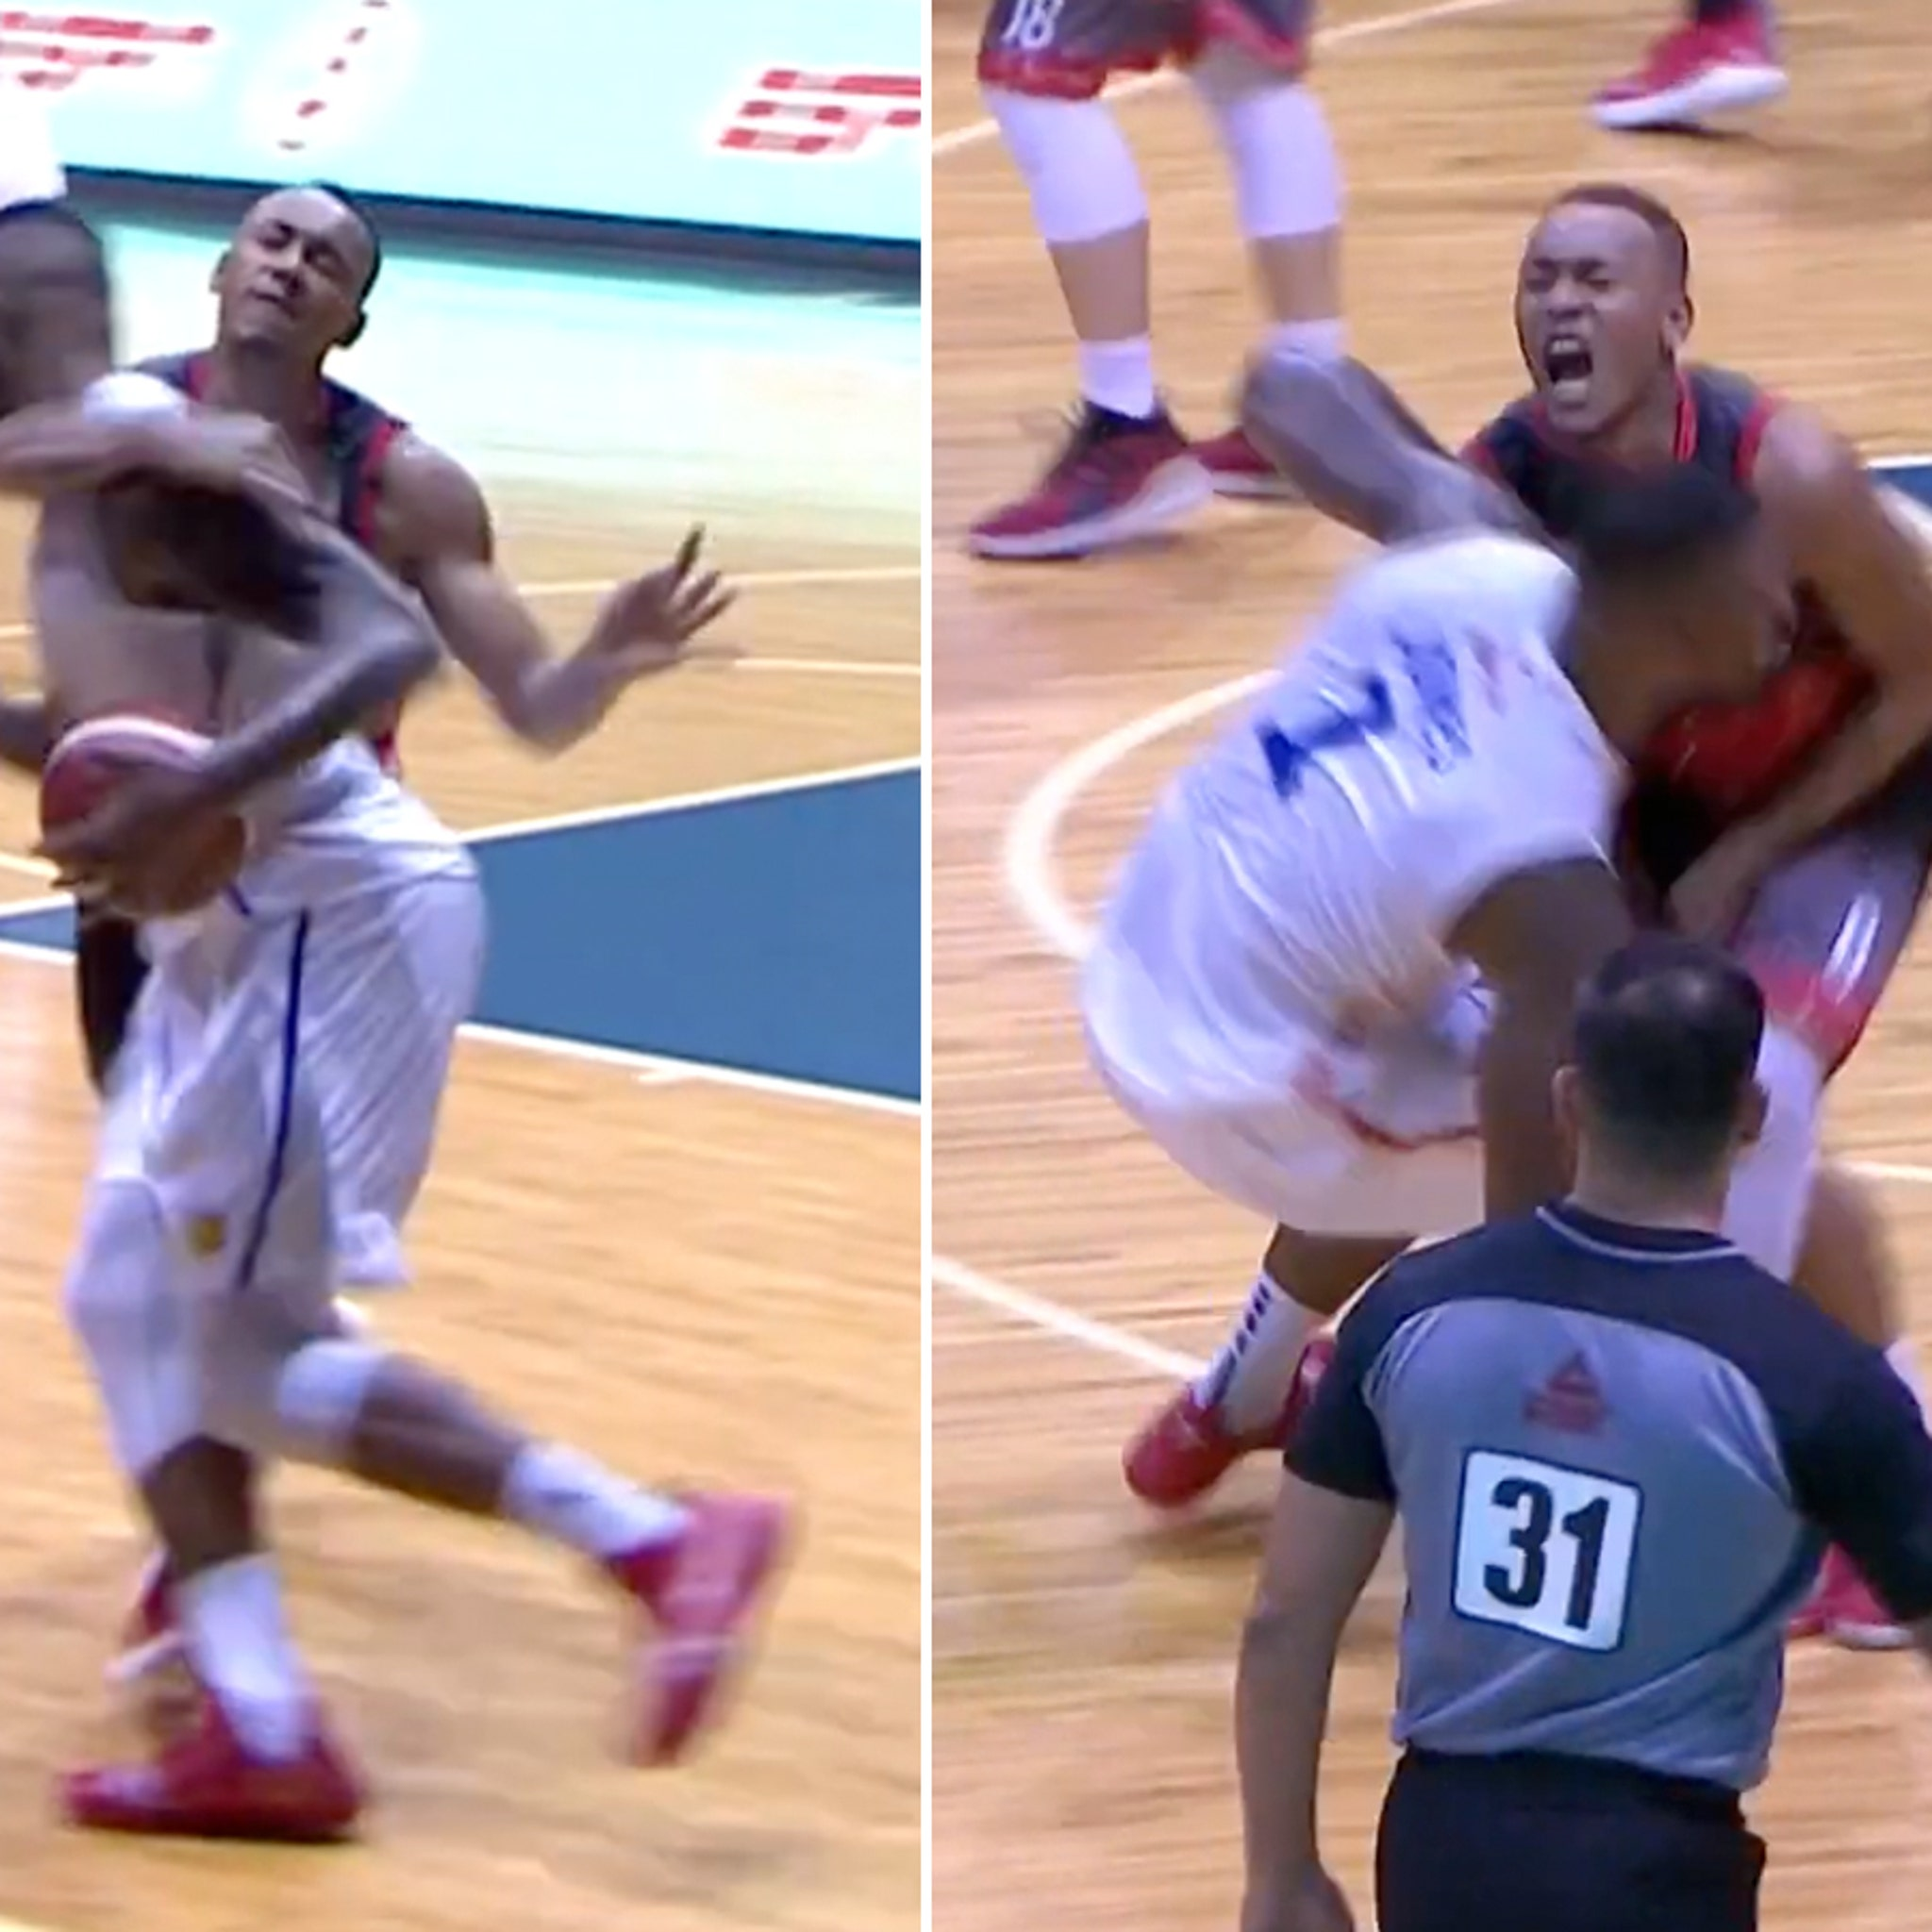 Ex-NBA Player Terrence Jones in Insane Hoops Fight, Nut Shots and Dancing